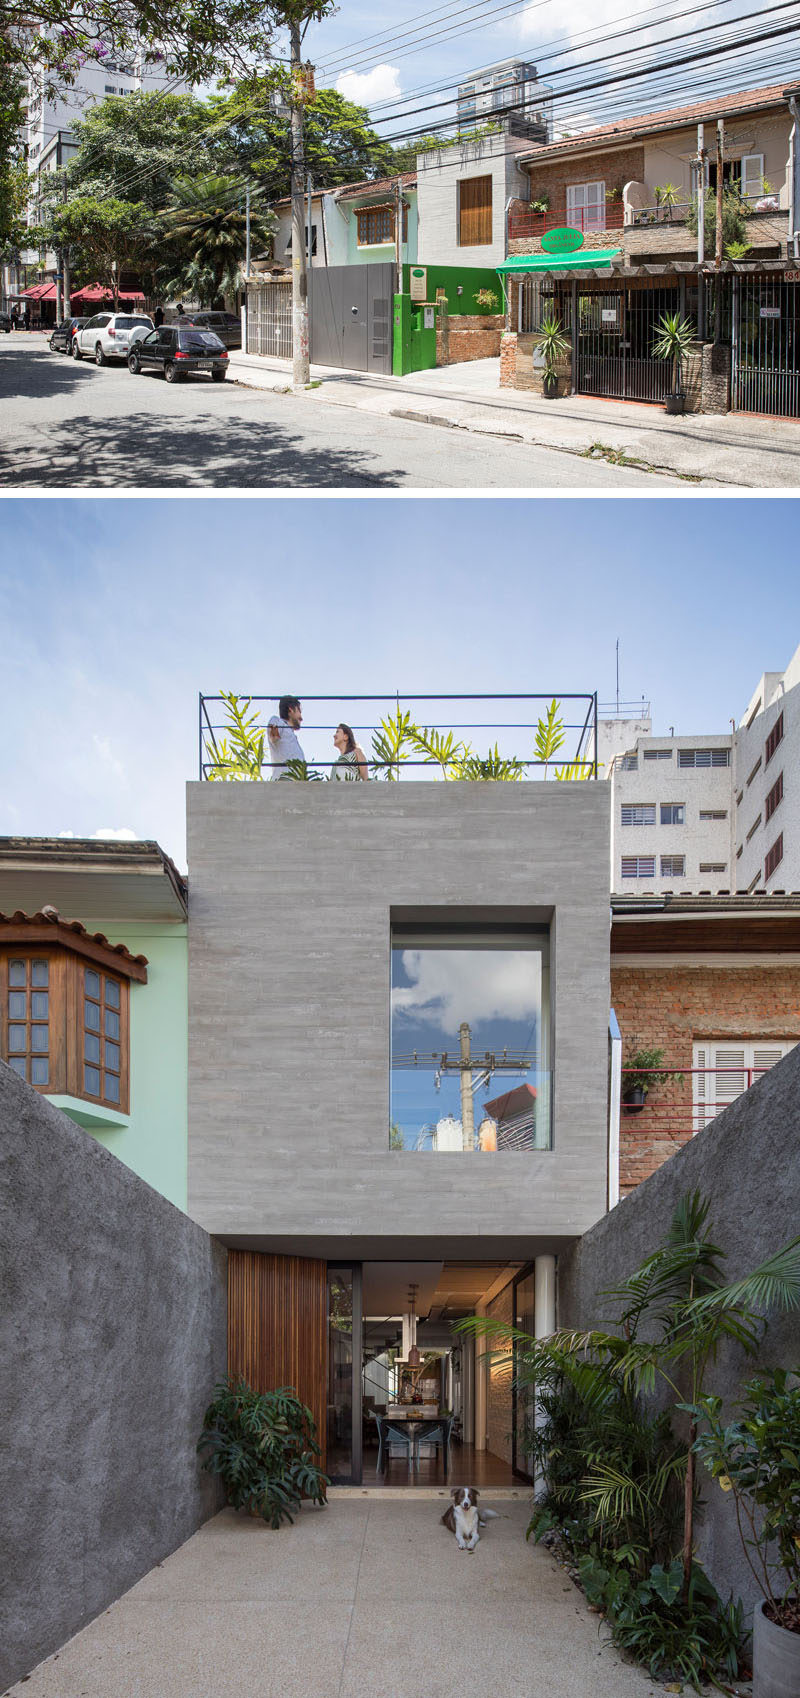 The updated narrow Brazilian house has a secure area at the front of the home that acts as a small garden and patio before entering the home. #NarrowHouse #ModernHouse